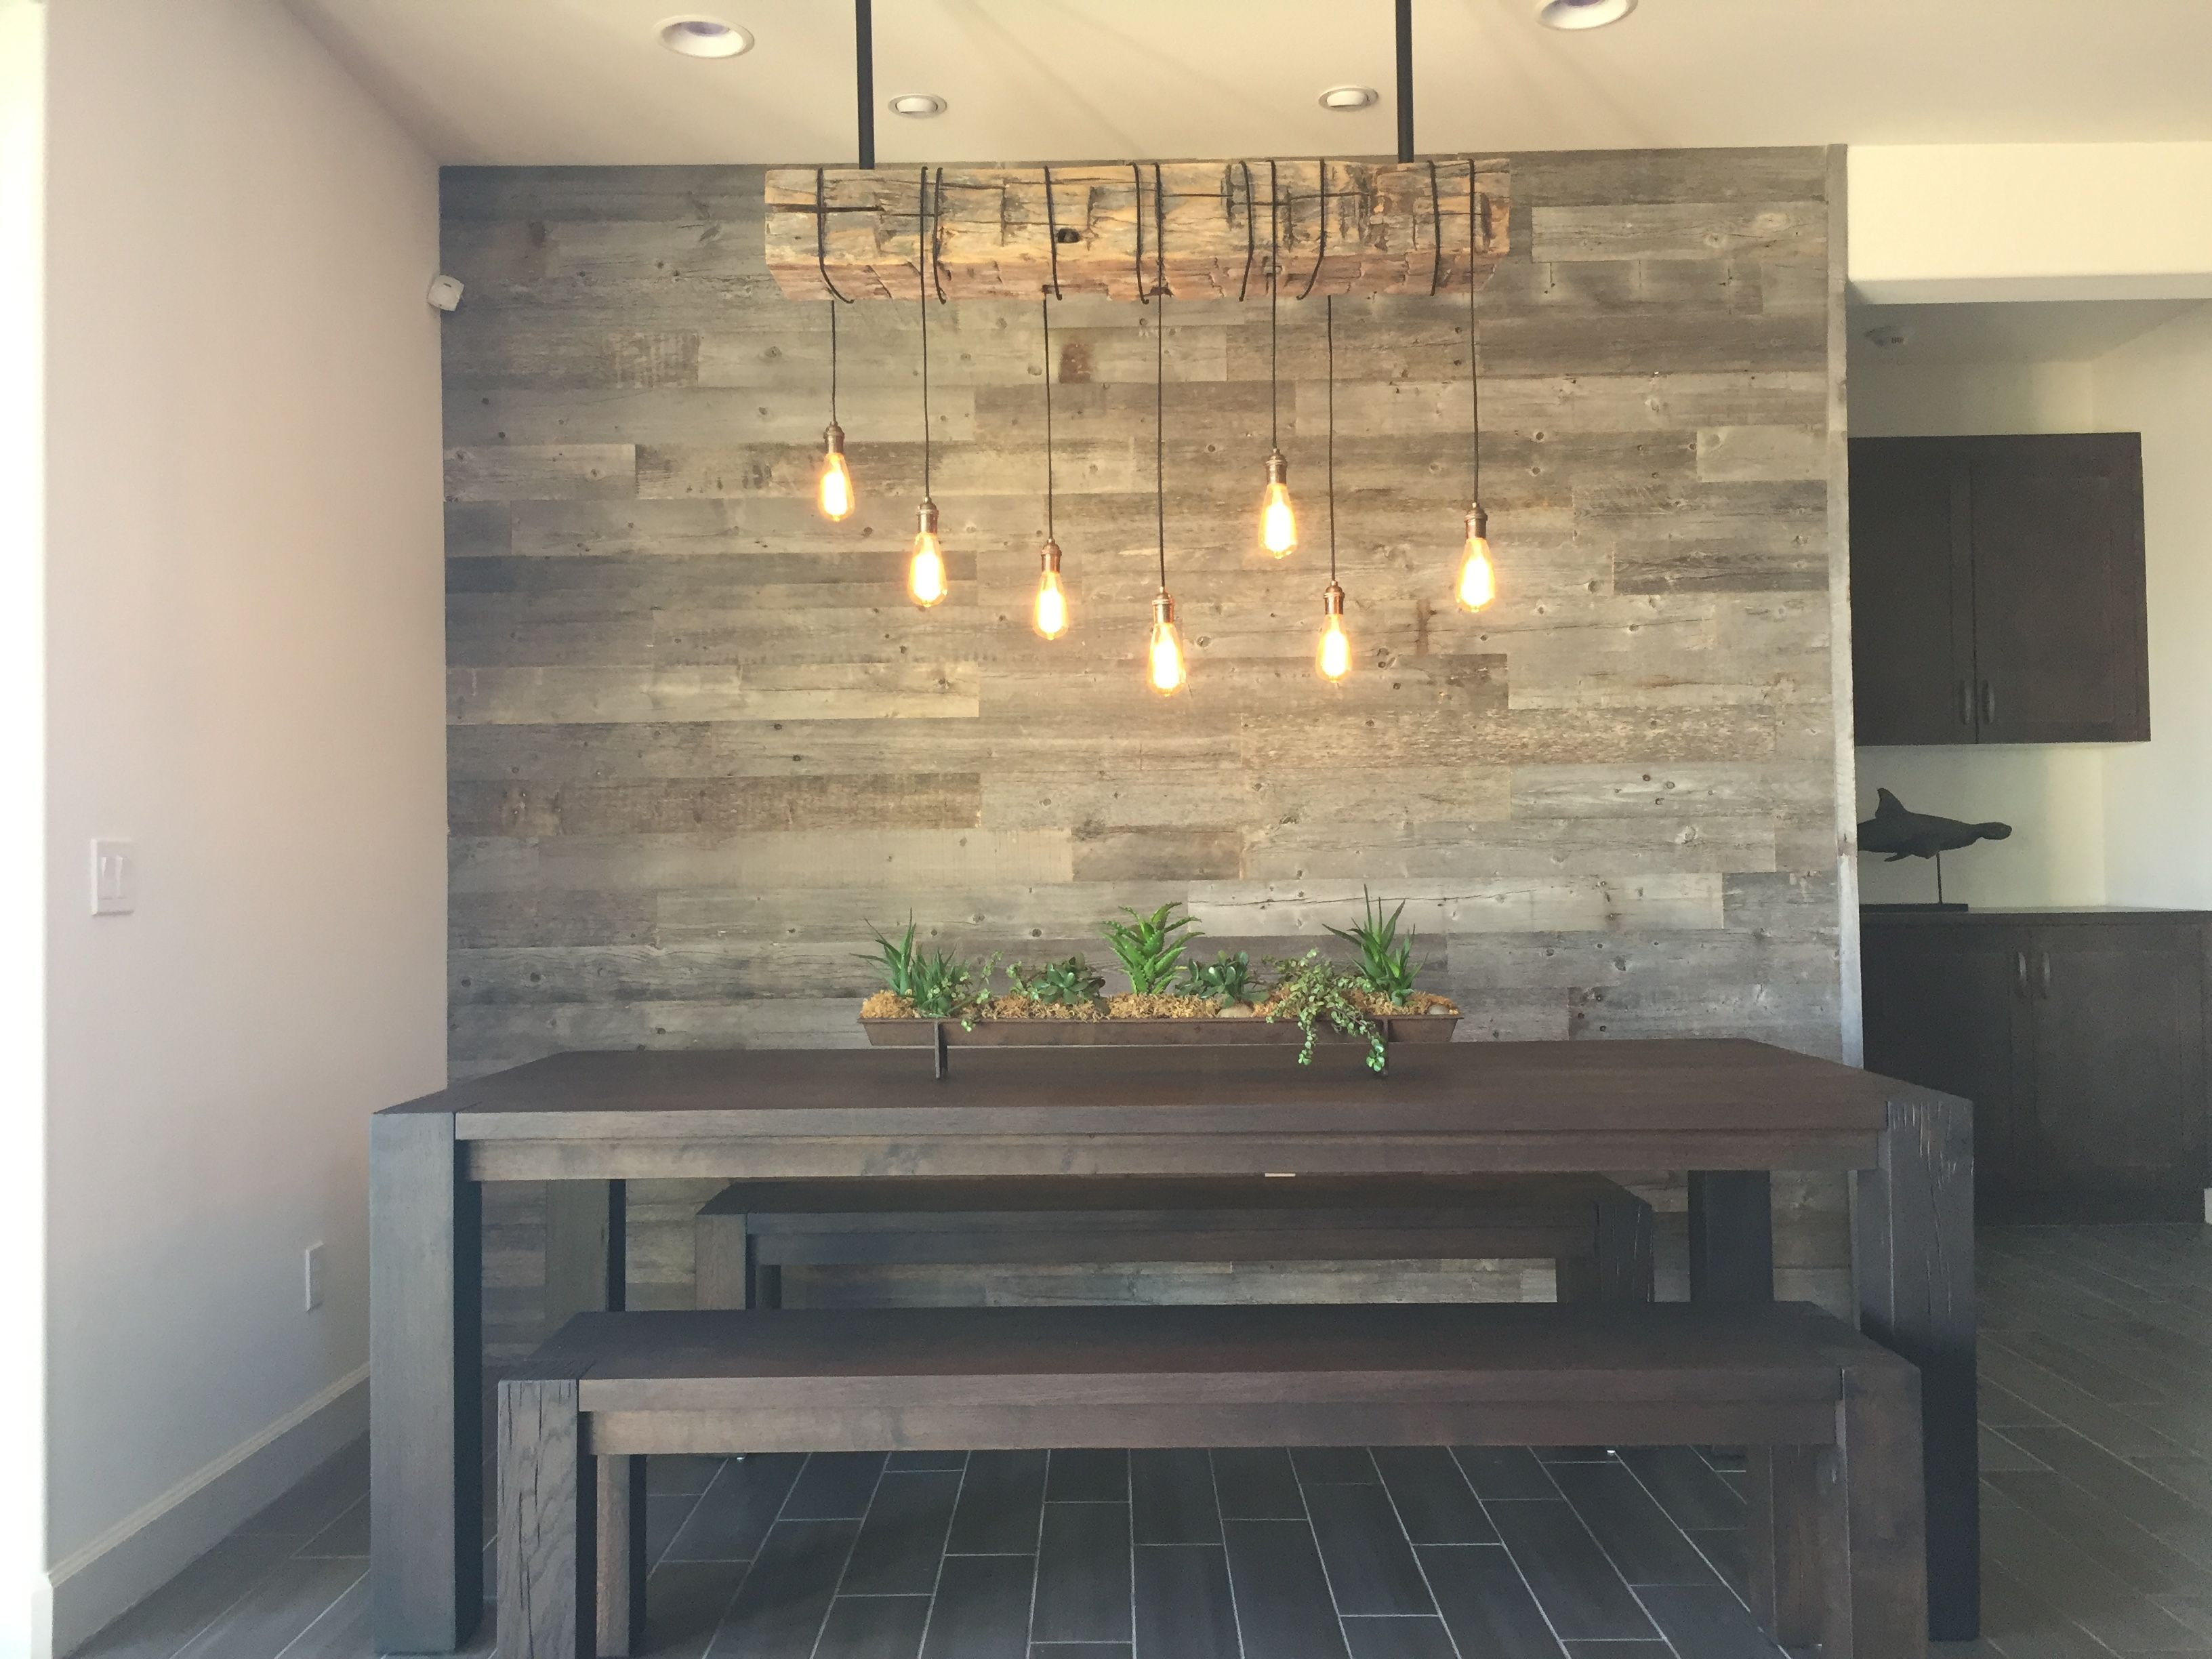 Reclaimed Wood Accent Wall Wood From Recwood Planks In Big Sky Grey Https Emf Rustic Dining Room Lighting Accent Walls In Living Room Wood Walls Living Room #wooden #wall #designs #living #room